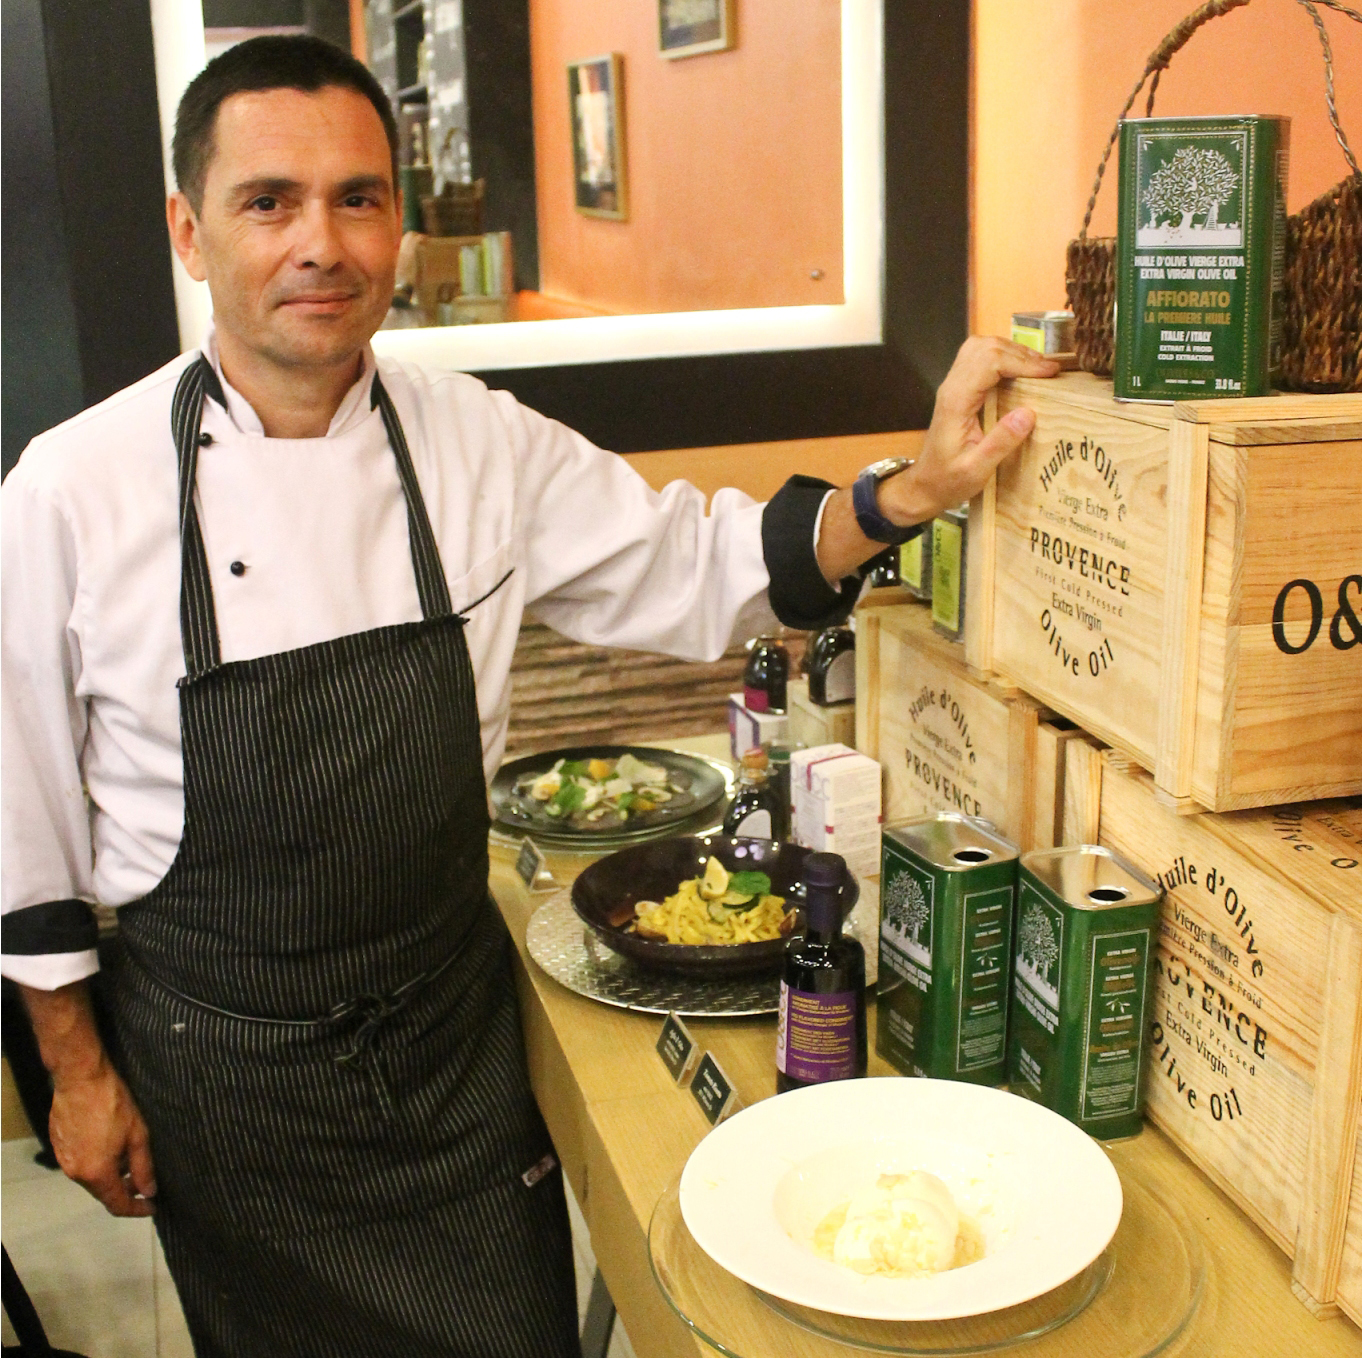 Va Bene Pasta Deli executive chef and owner Massimo Veronesi